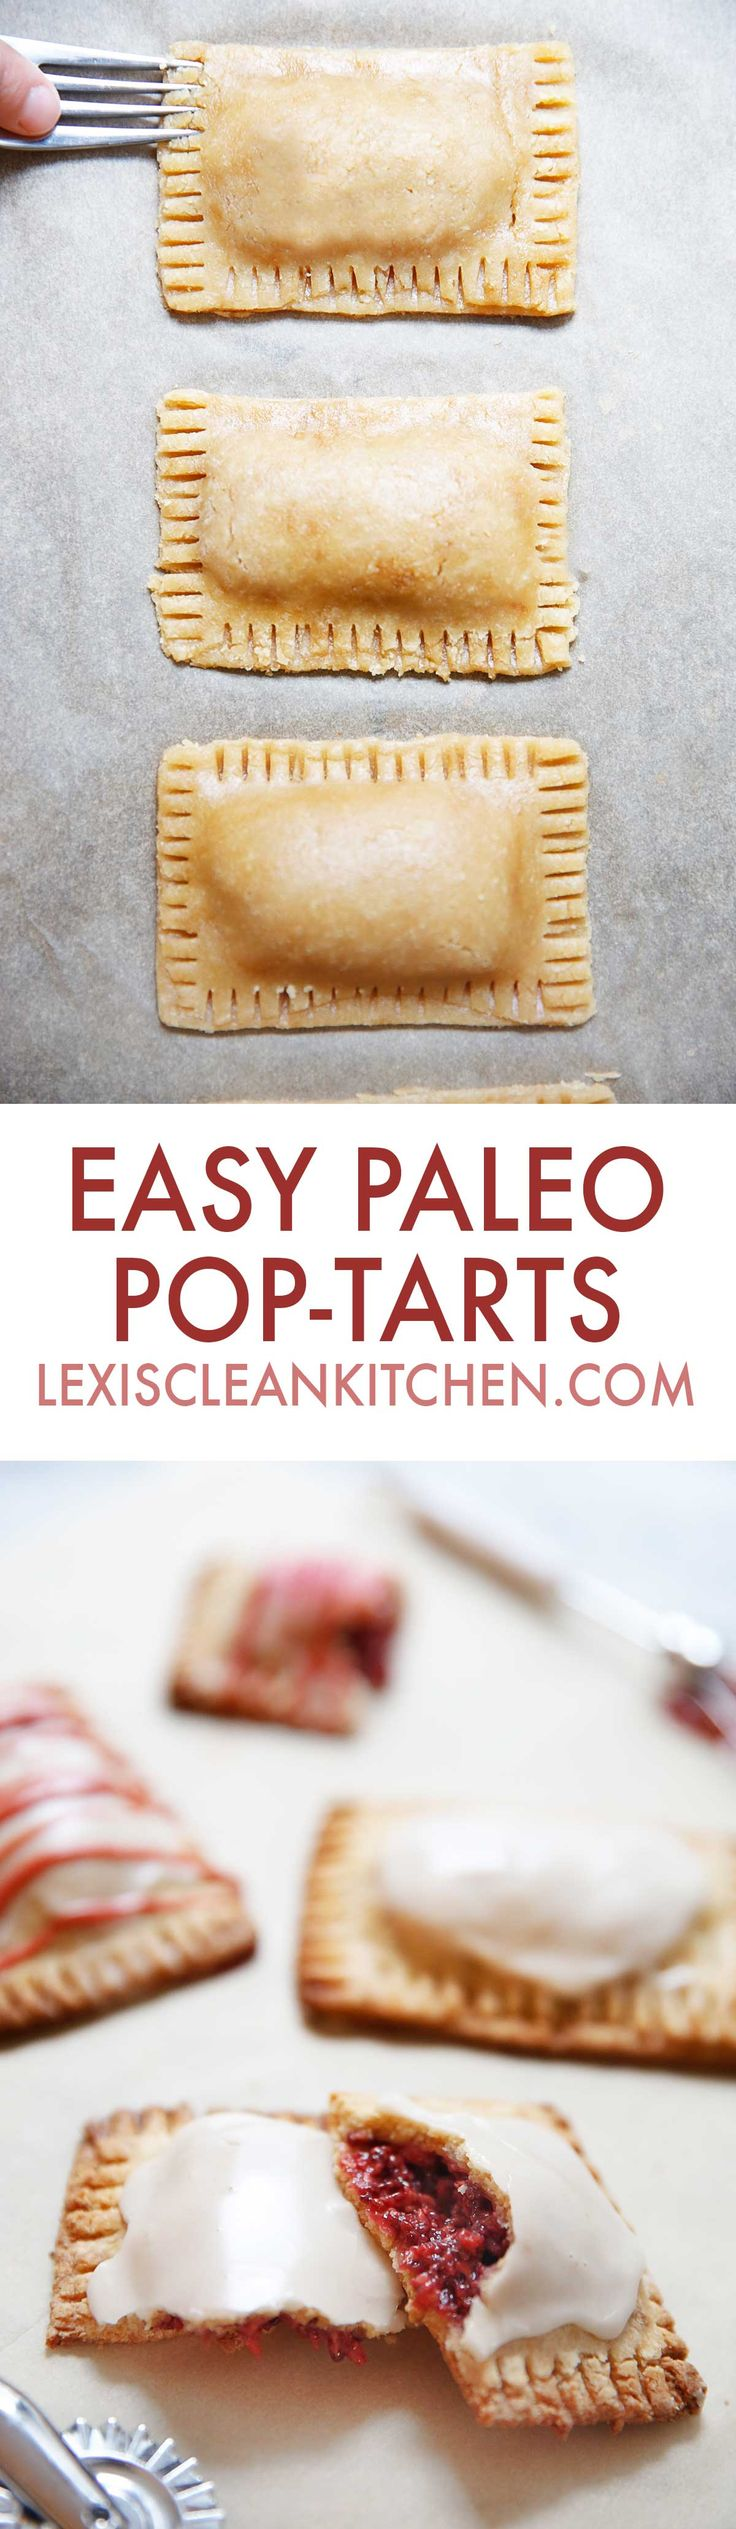 Ever wonder how to make homemade pop tarts? I've been dreaming of making a paleo healthy pop tarts recipe for some time now, and we've finally got the homemade pop tart recipe just right for you! This homemade pop tart recipe is gluten-free and grain-free, and pairs wonderfully with my homemade chia seed jam.